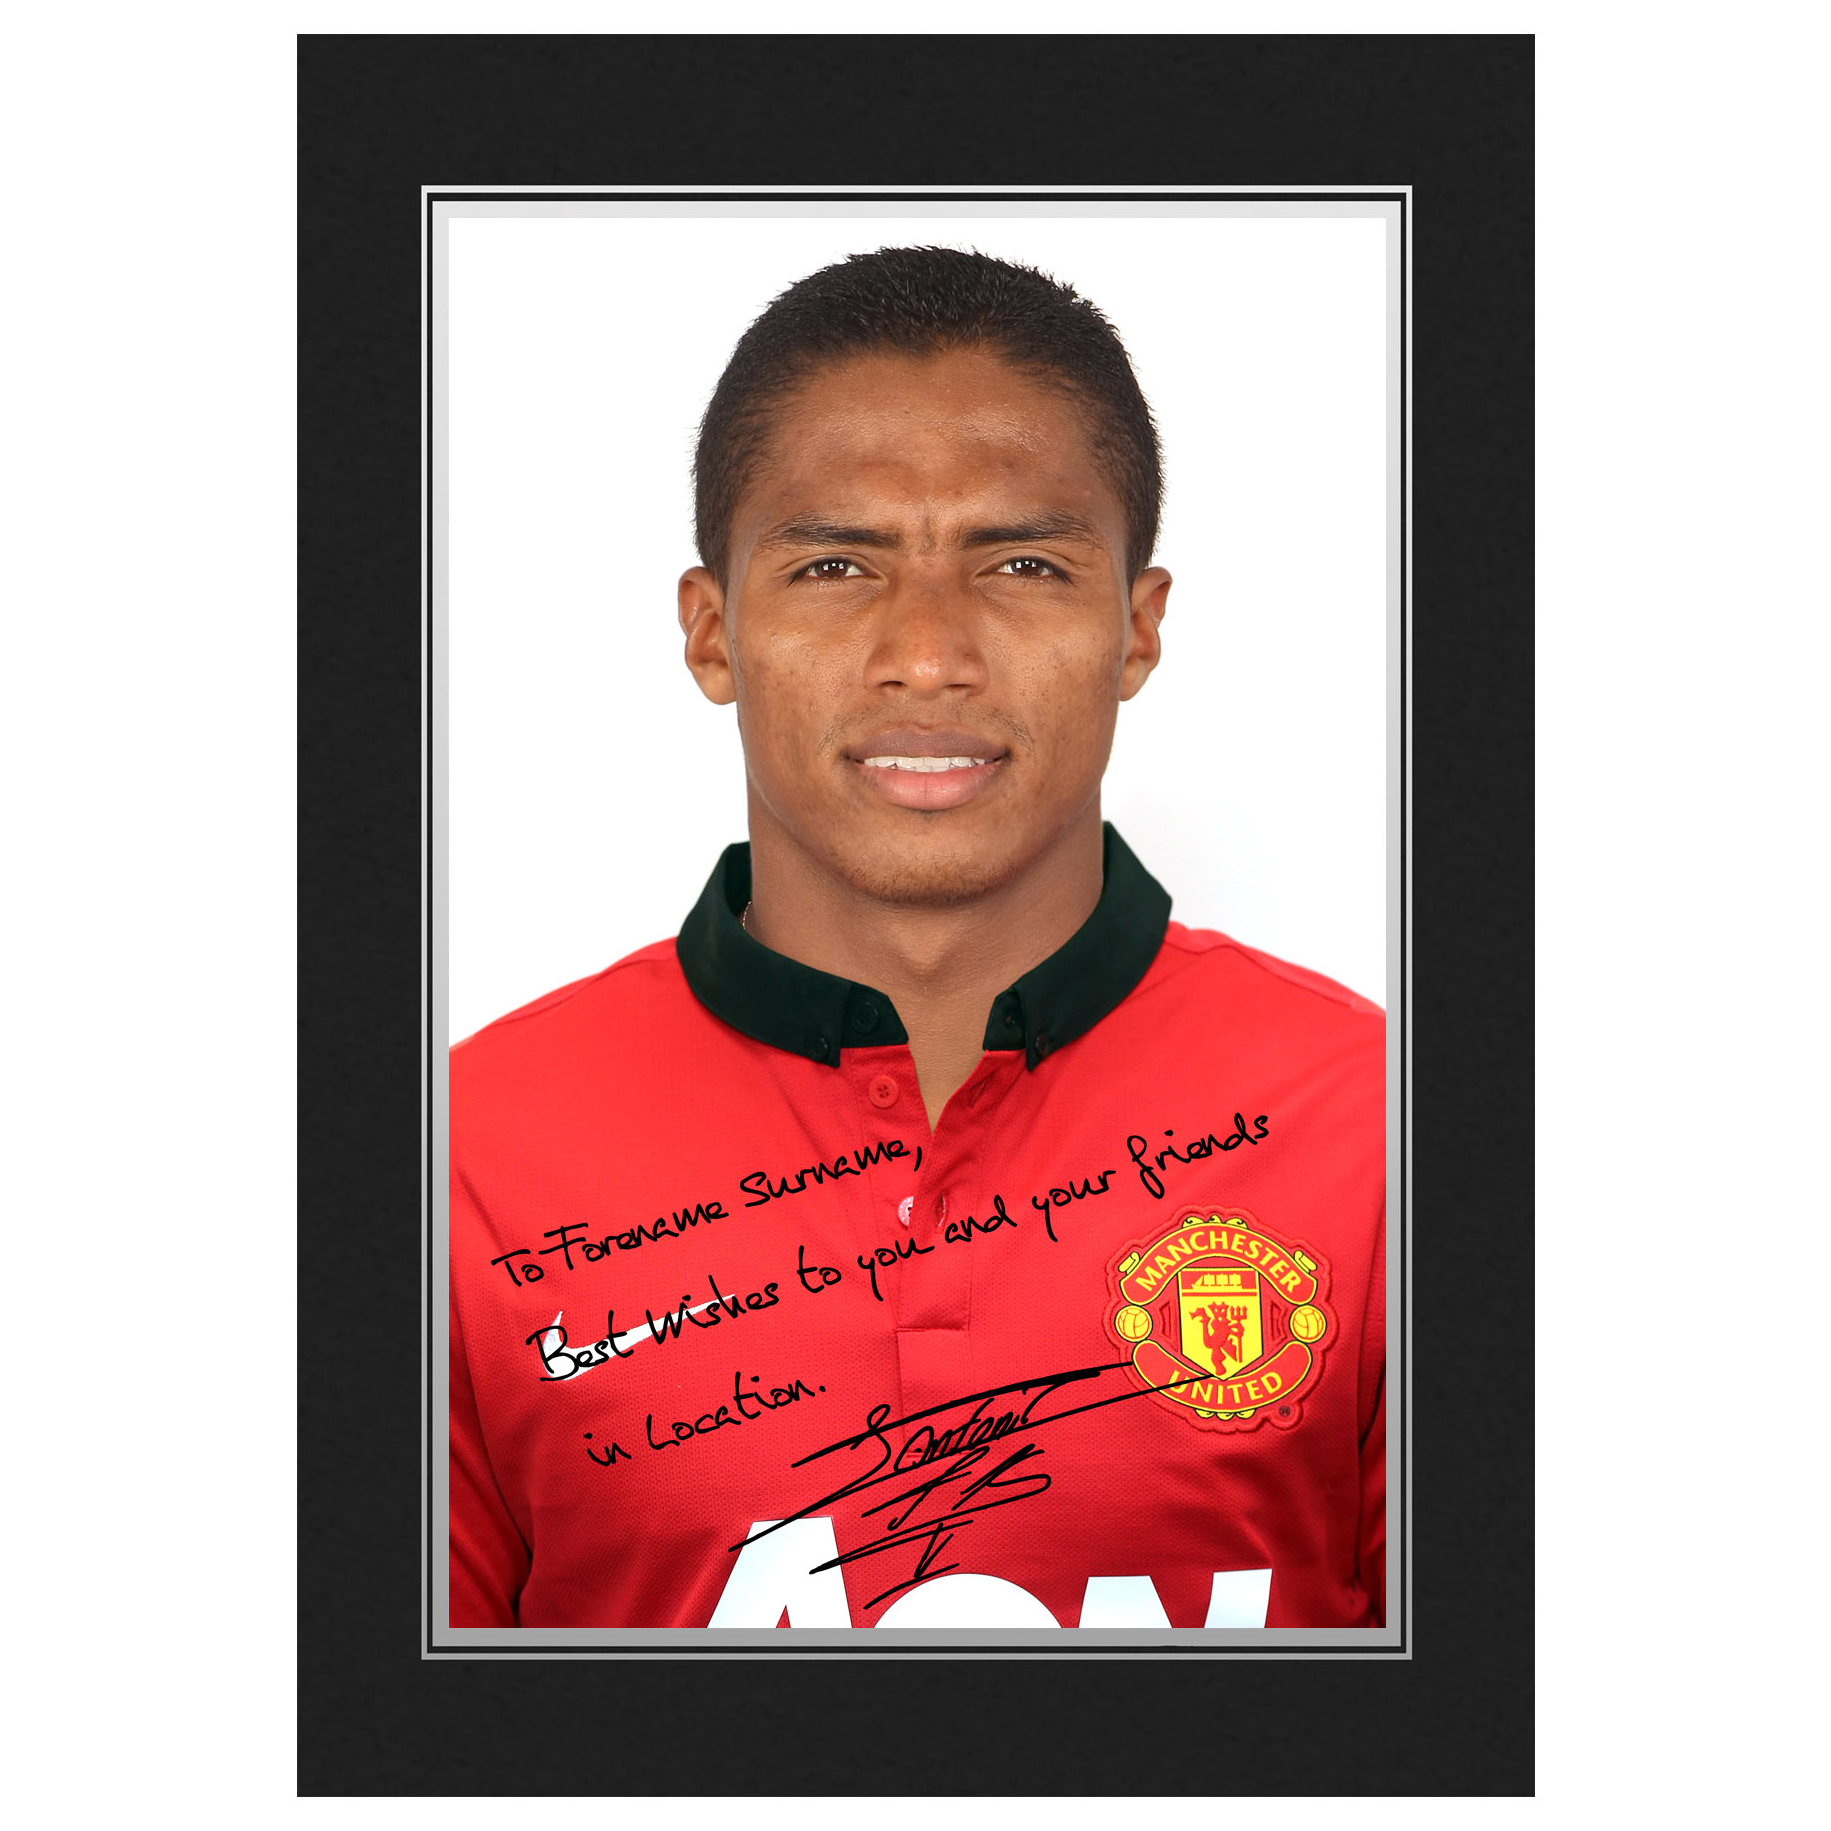 Manchester United Personalised Signature Photo in Presentation Folder - Valencia